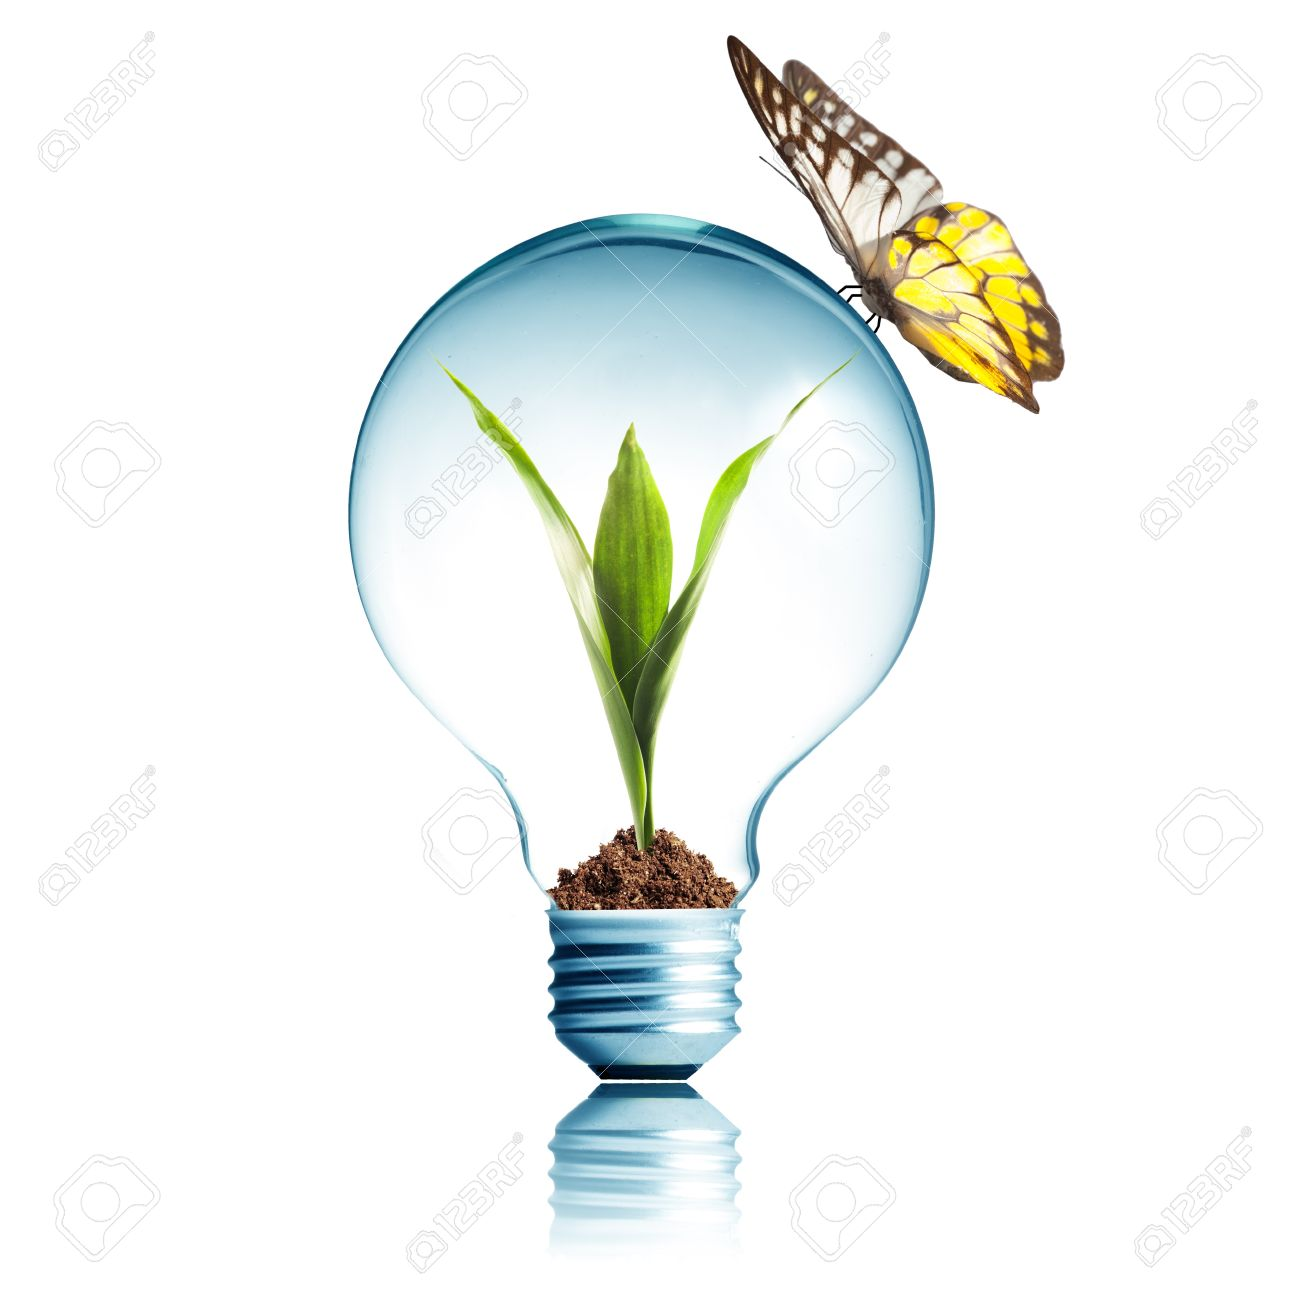 Plant Glowing Inside Light Bulb With Butterfly Stock Photo.